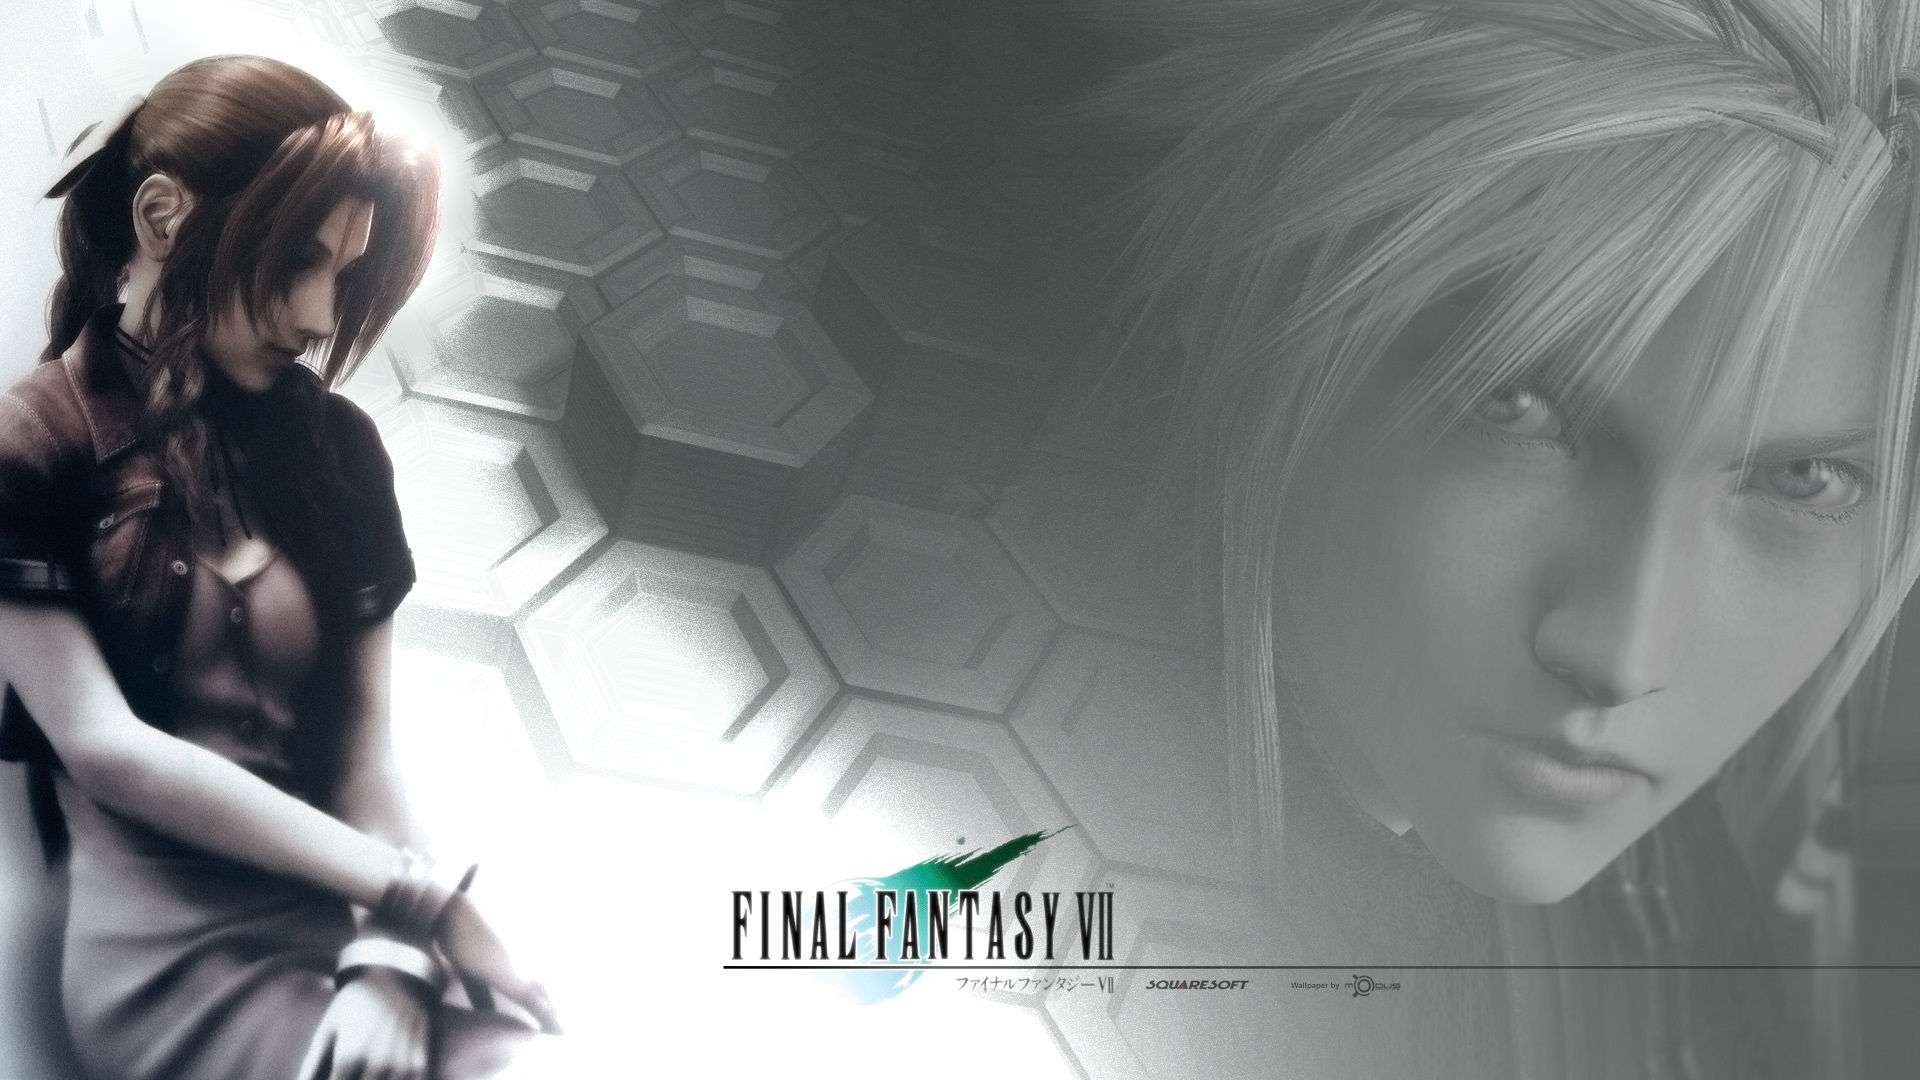 Final Fantasy Video Game Wallpaper 018